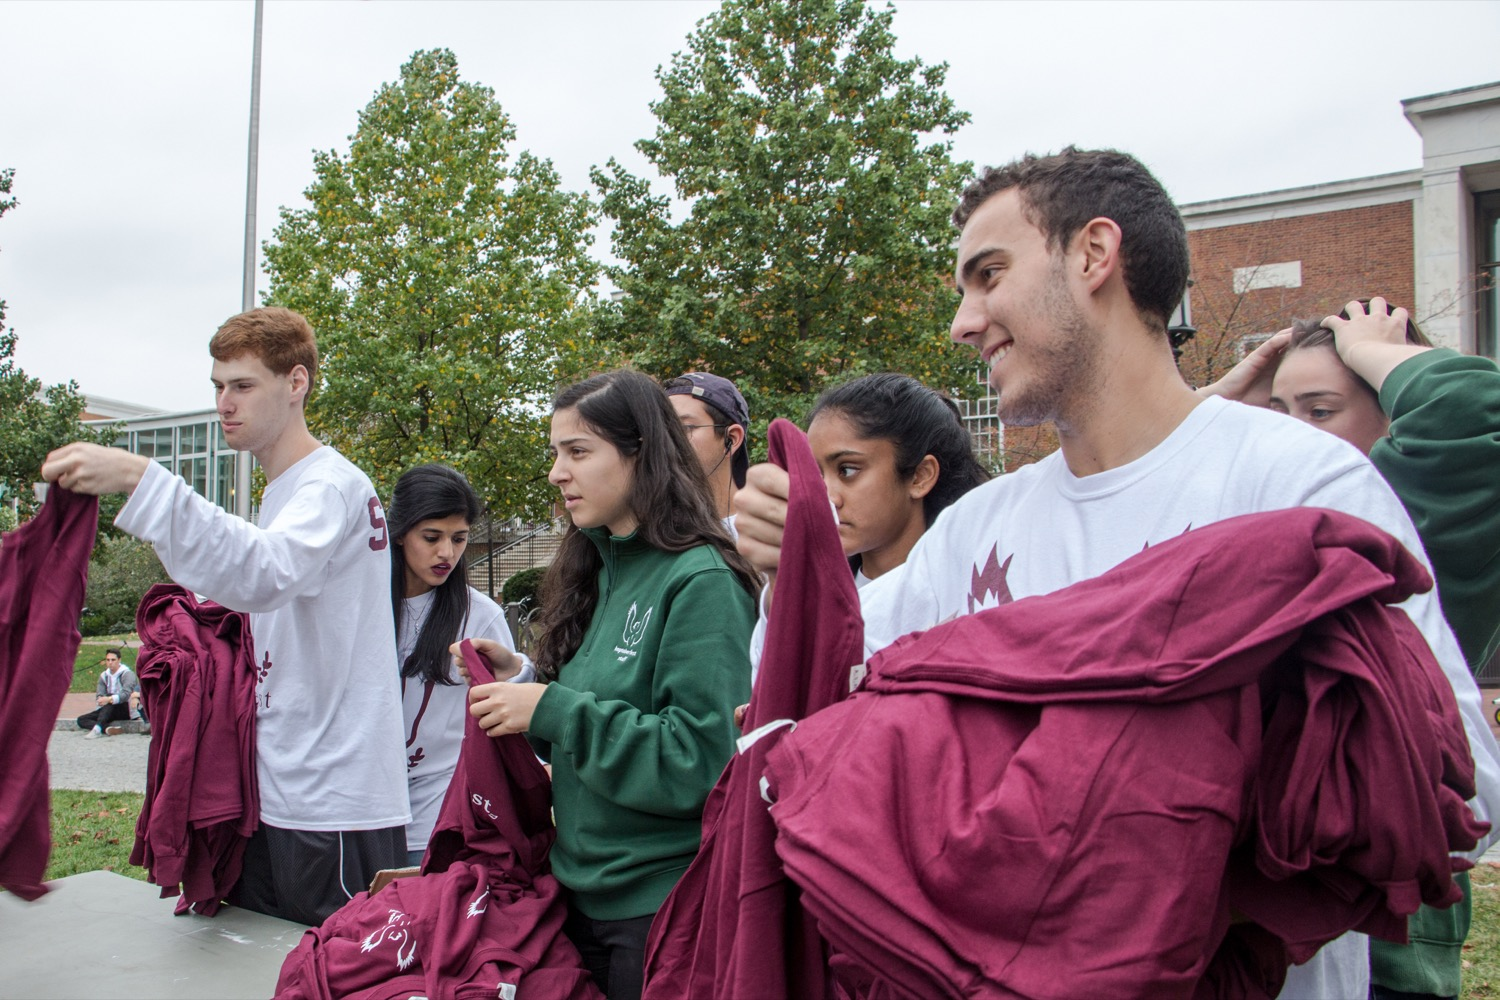 Students handing out t-shirts